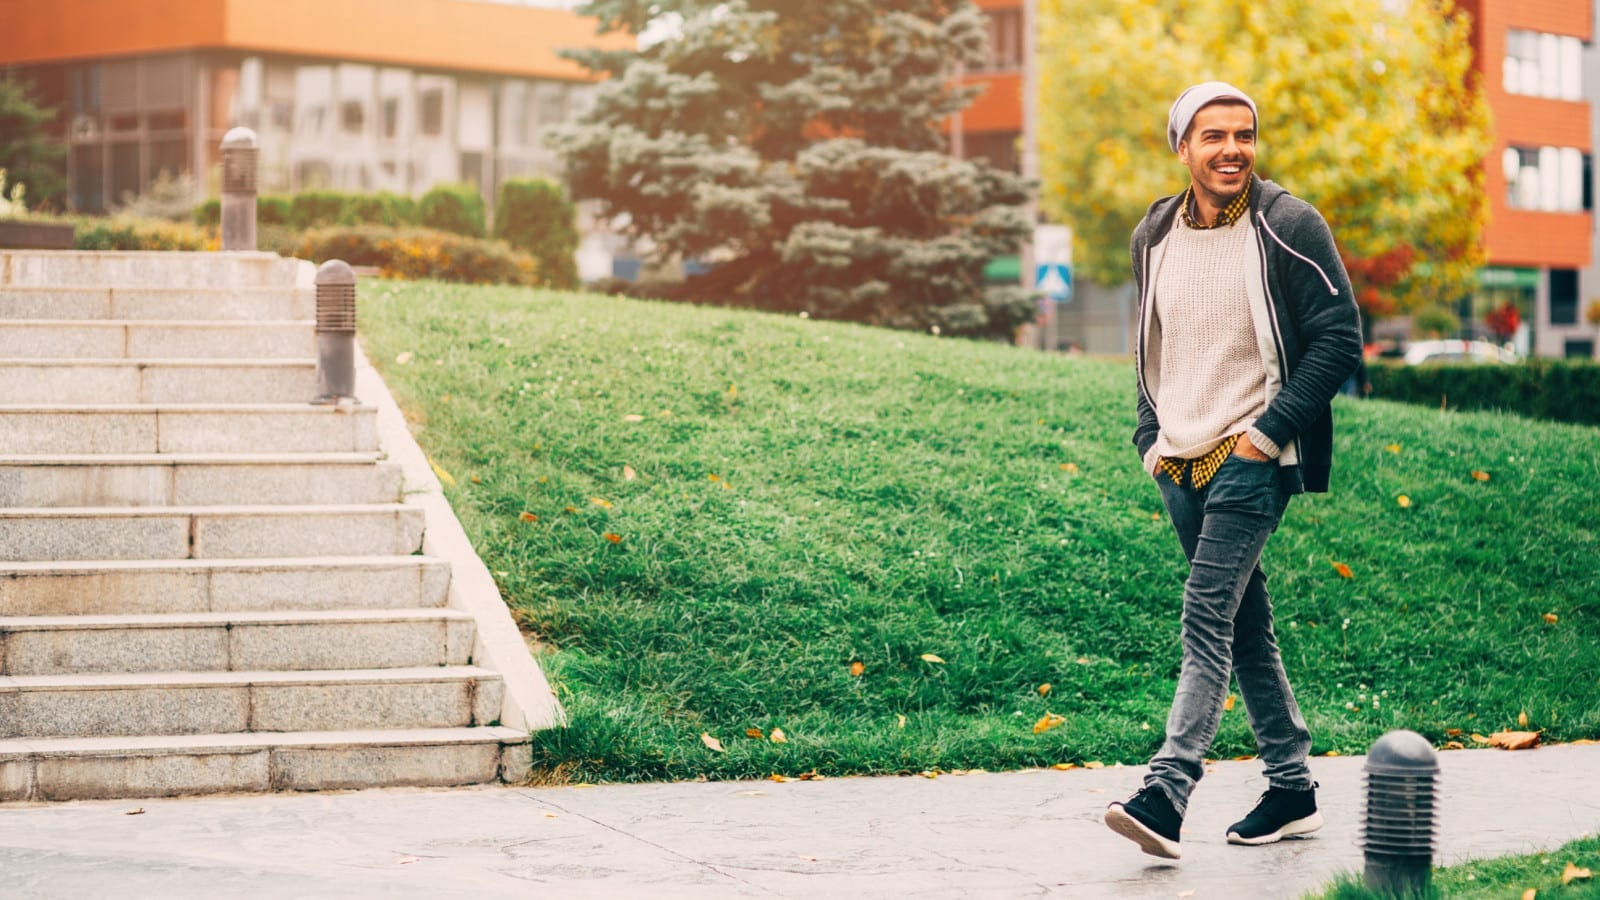 Young Man Walking Alone On A Sidewalk Stock Photo